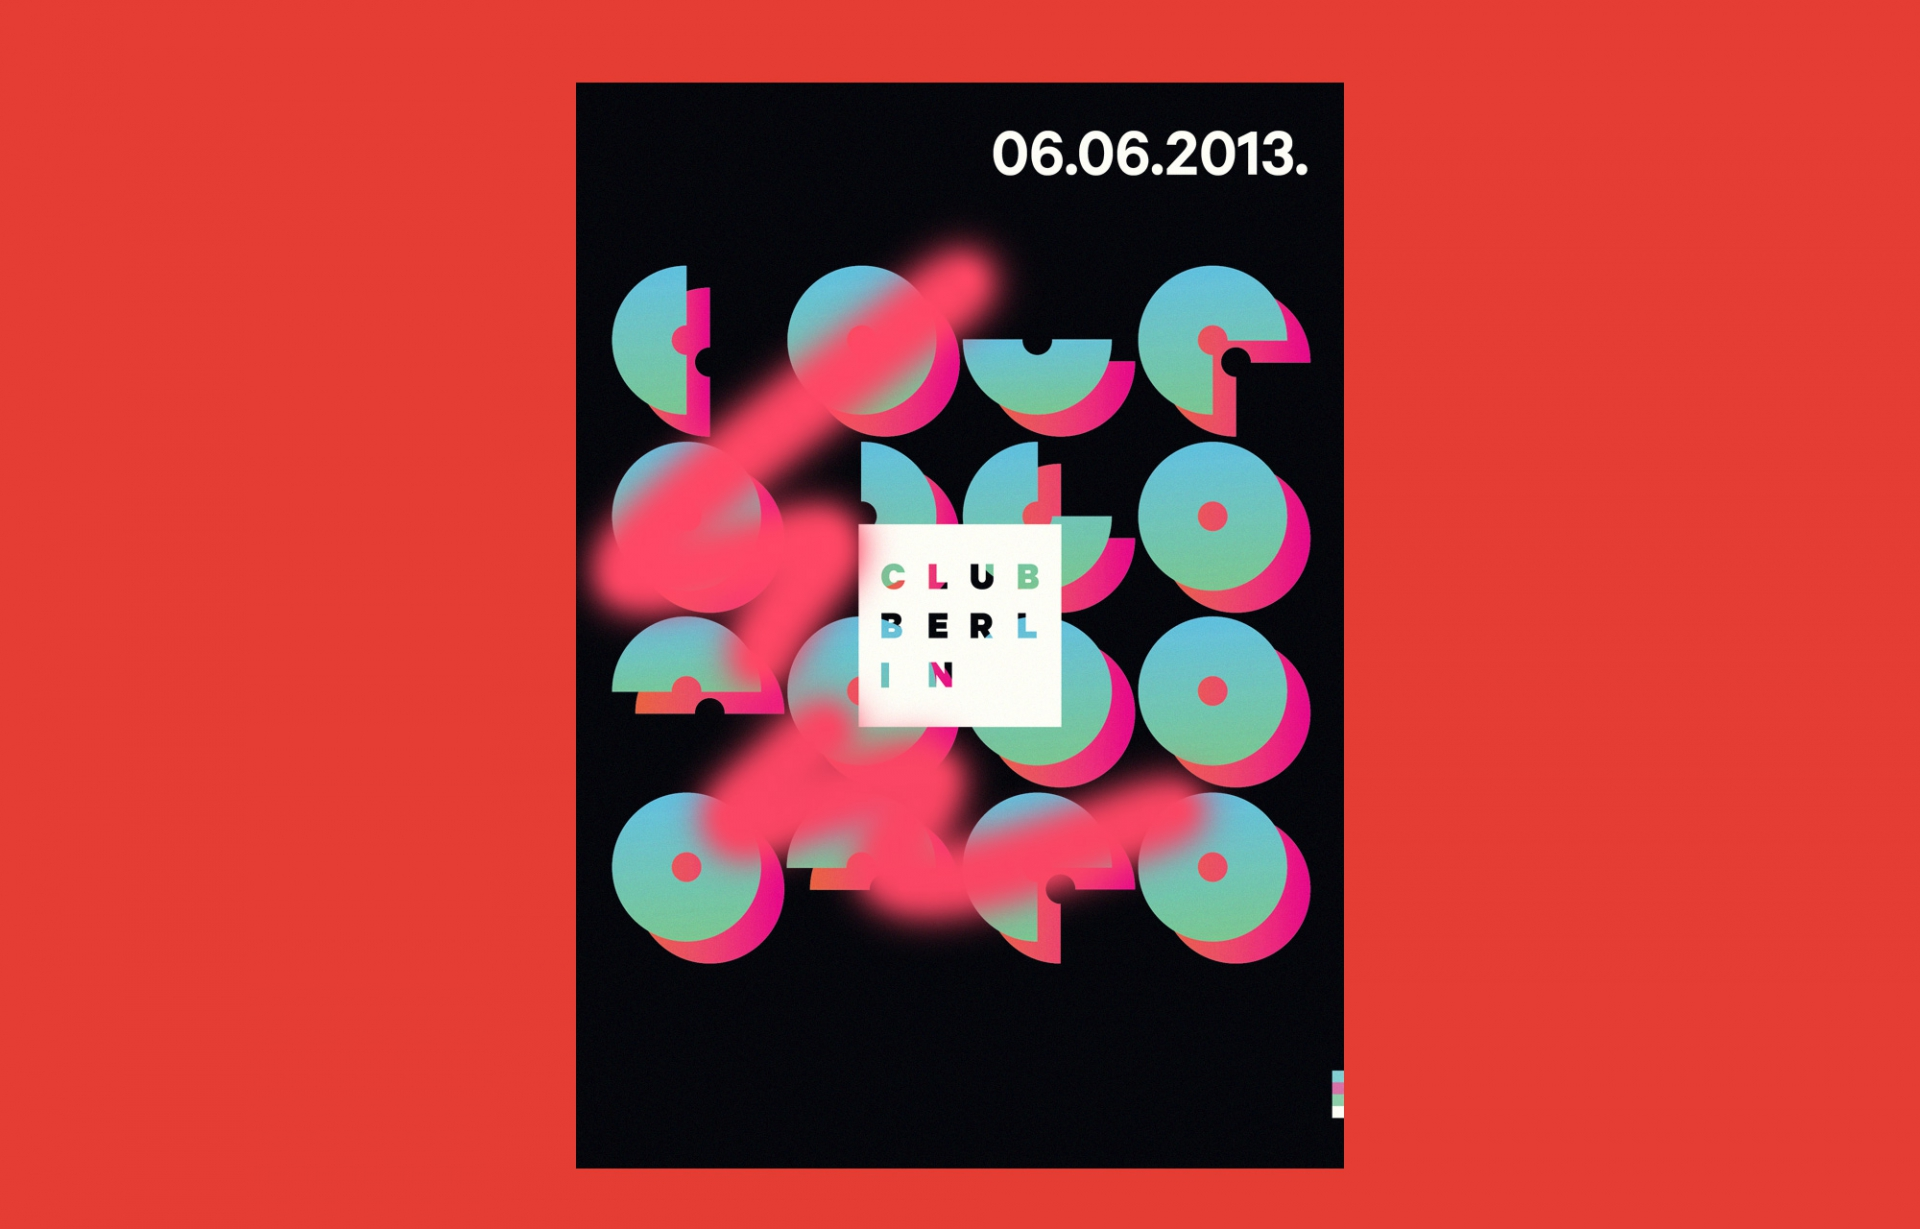 HORACIO LORENTE — Art Director Club Berlin